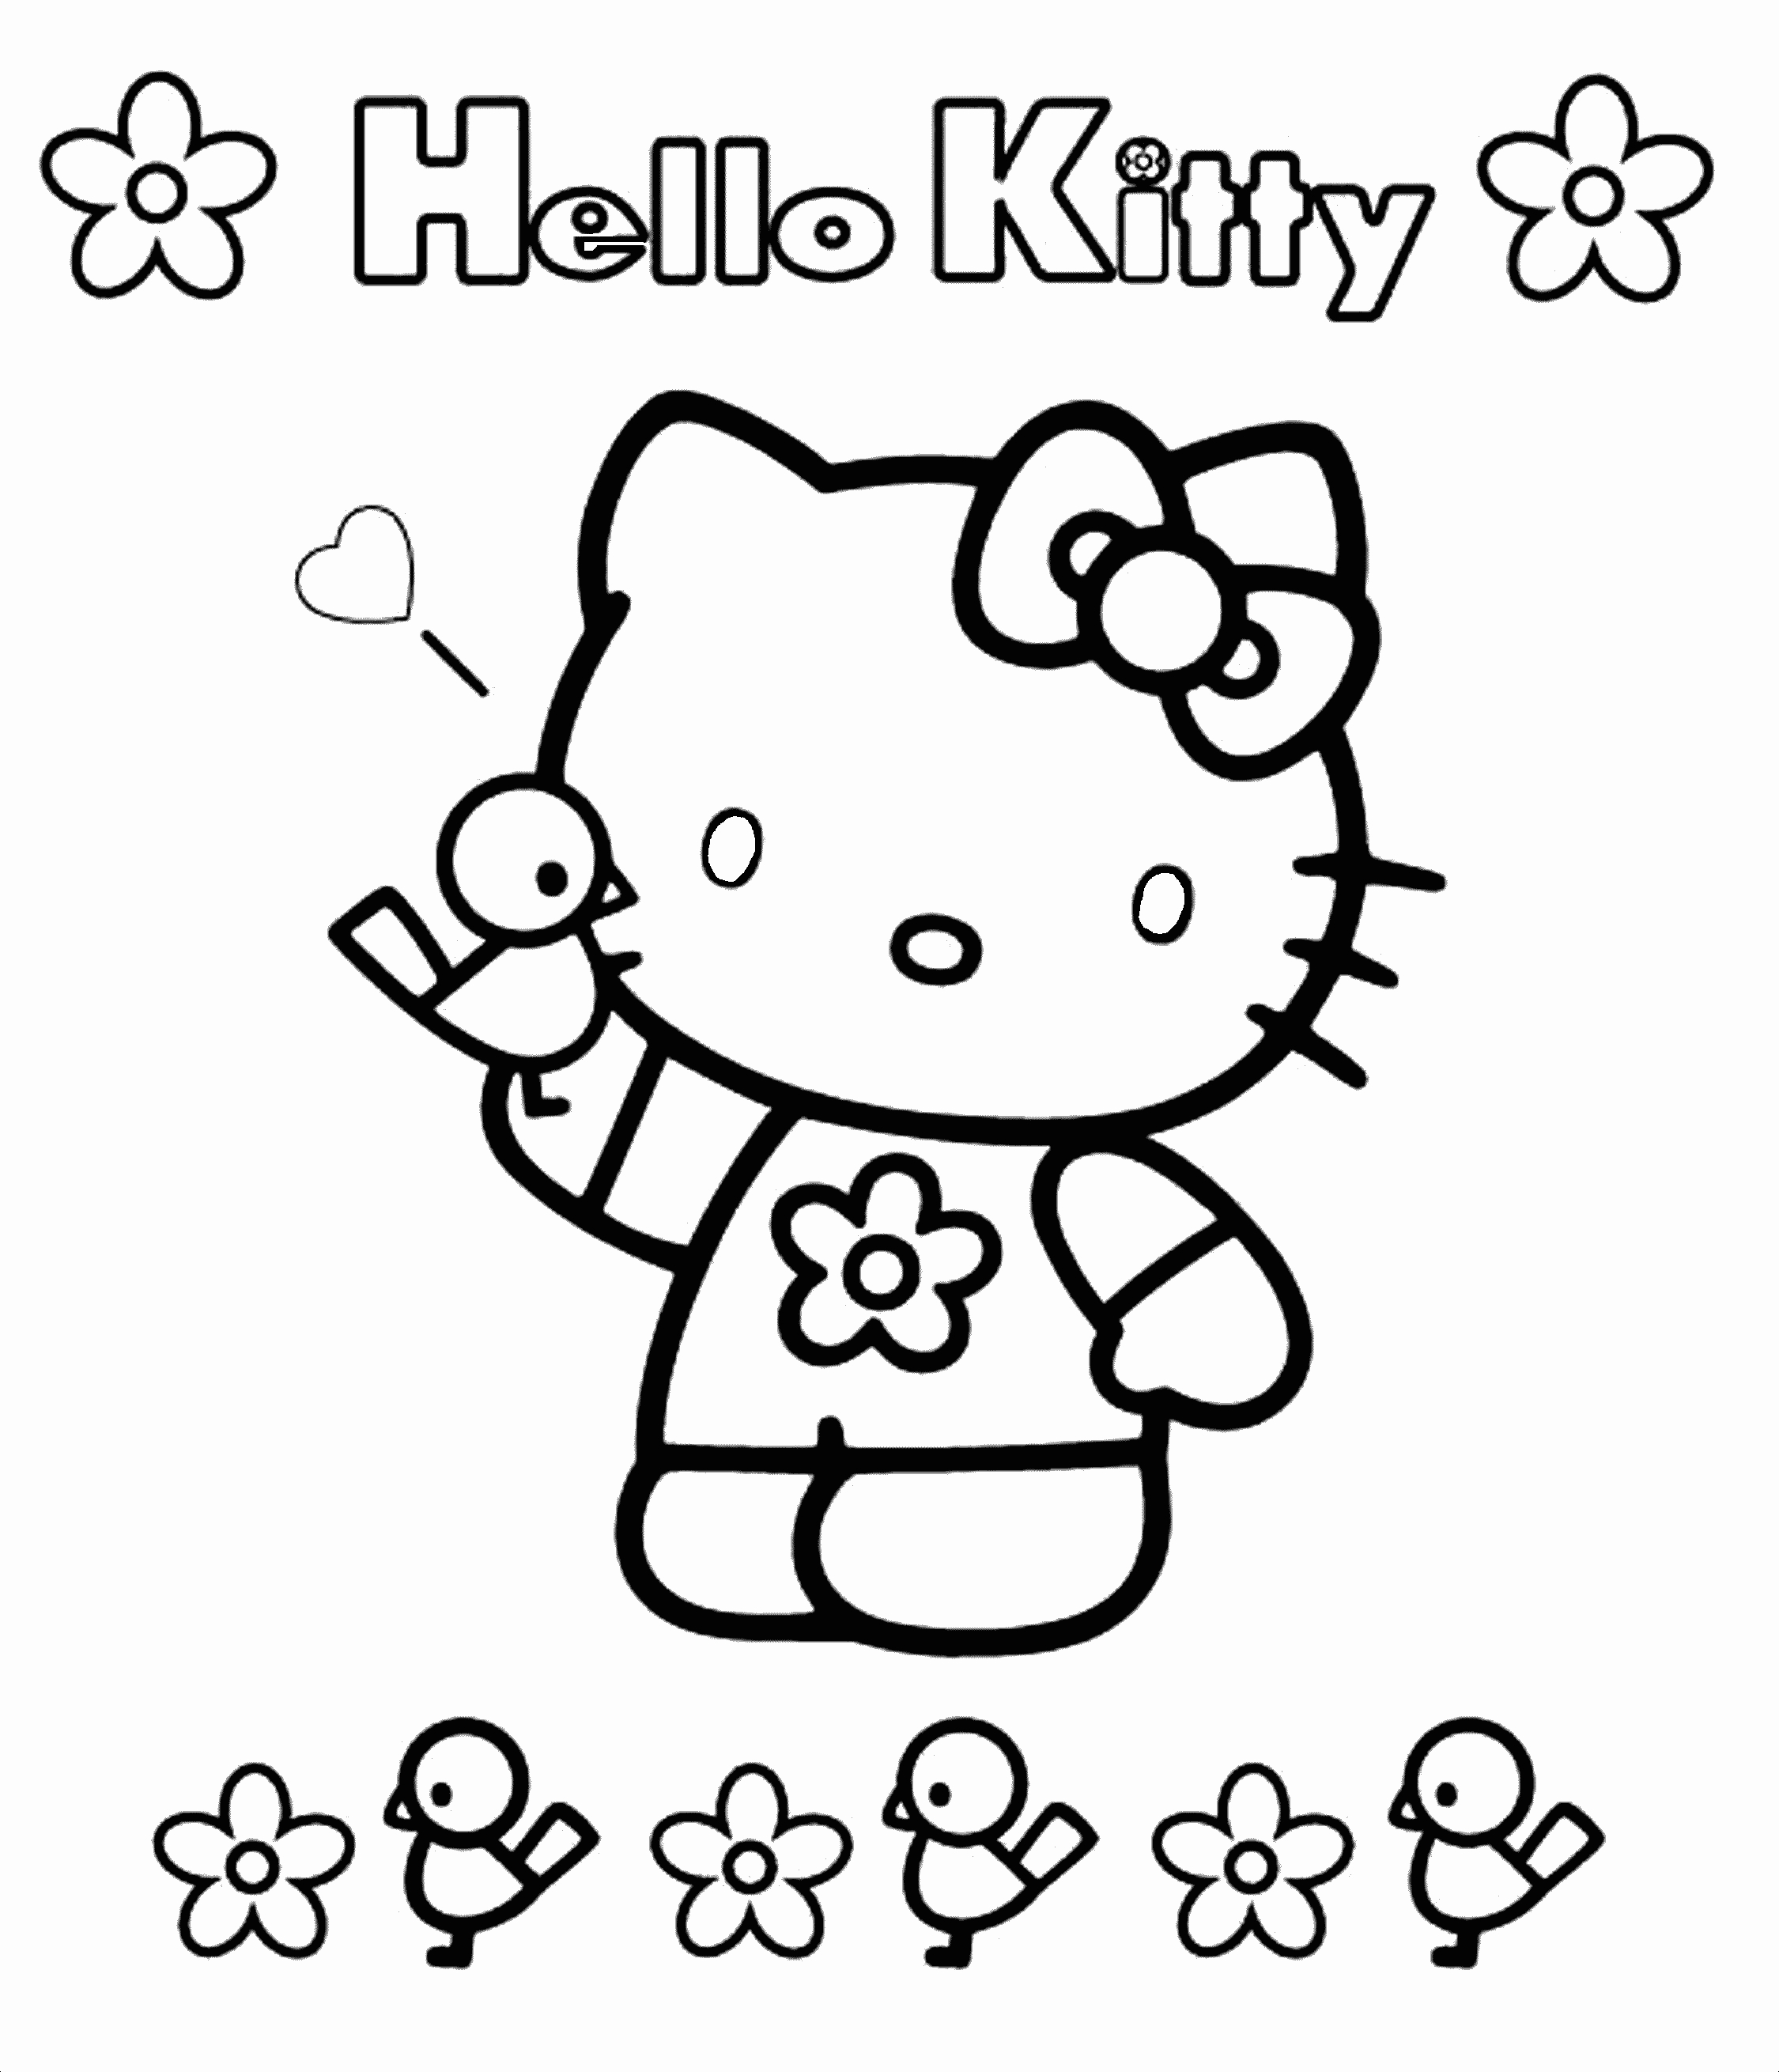 Unique Hello Kitty Princess Coloring Pages Collection to Print Of Proven Coloring Pages to Print Hello Kitty 2895 Unknown Printable